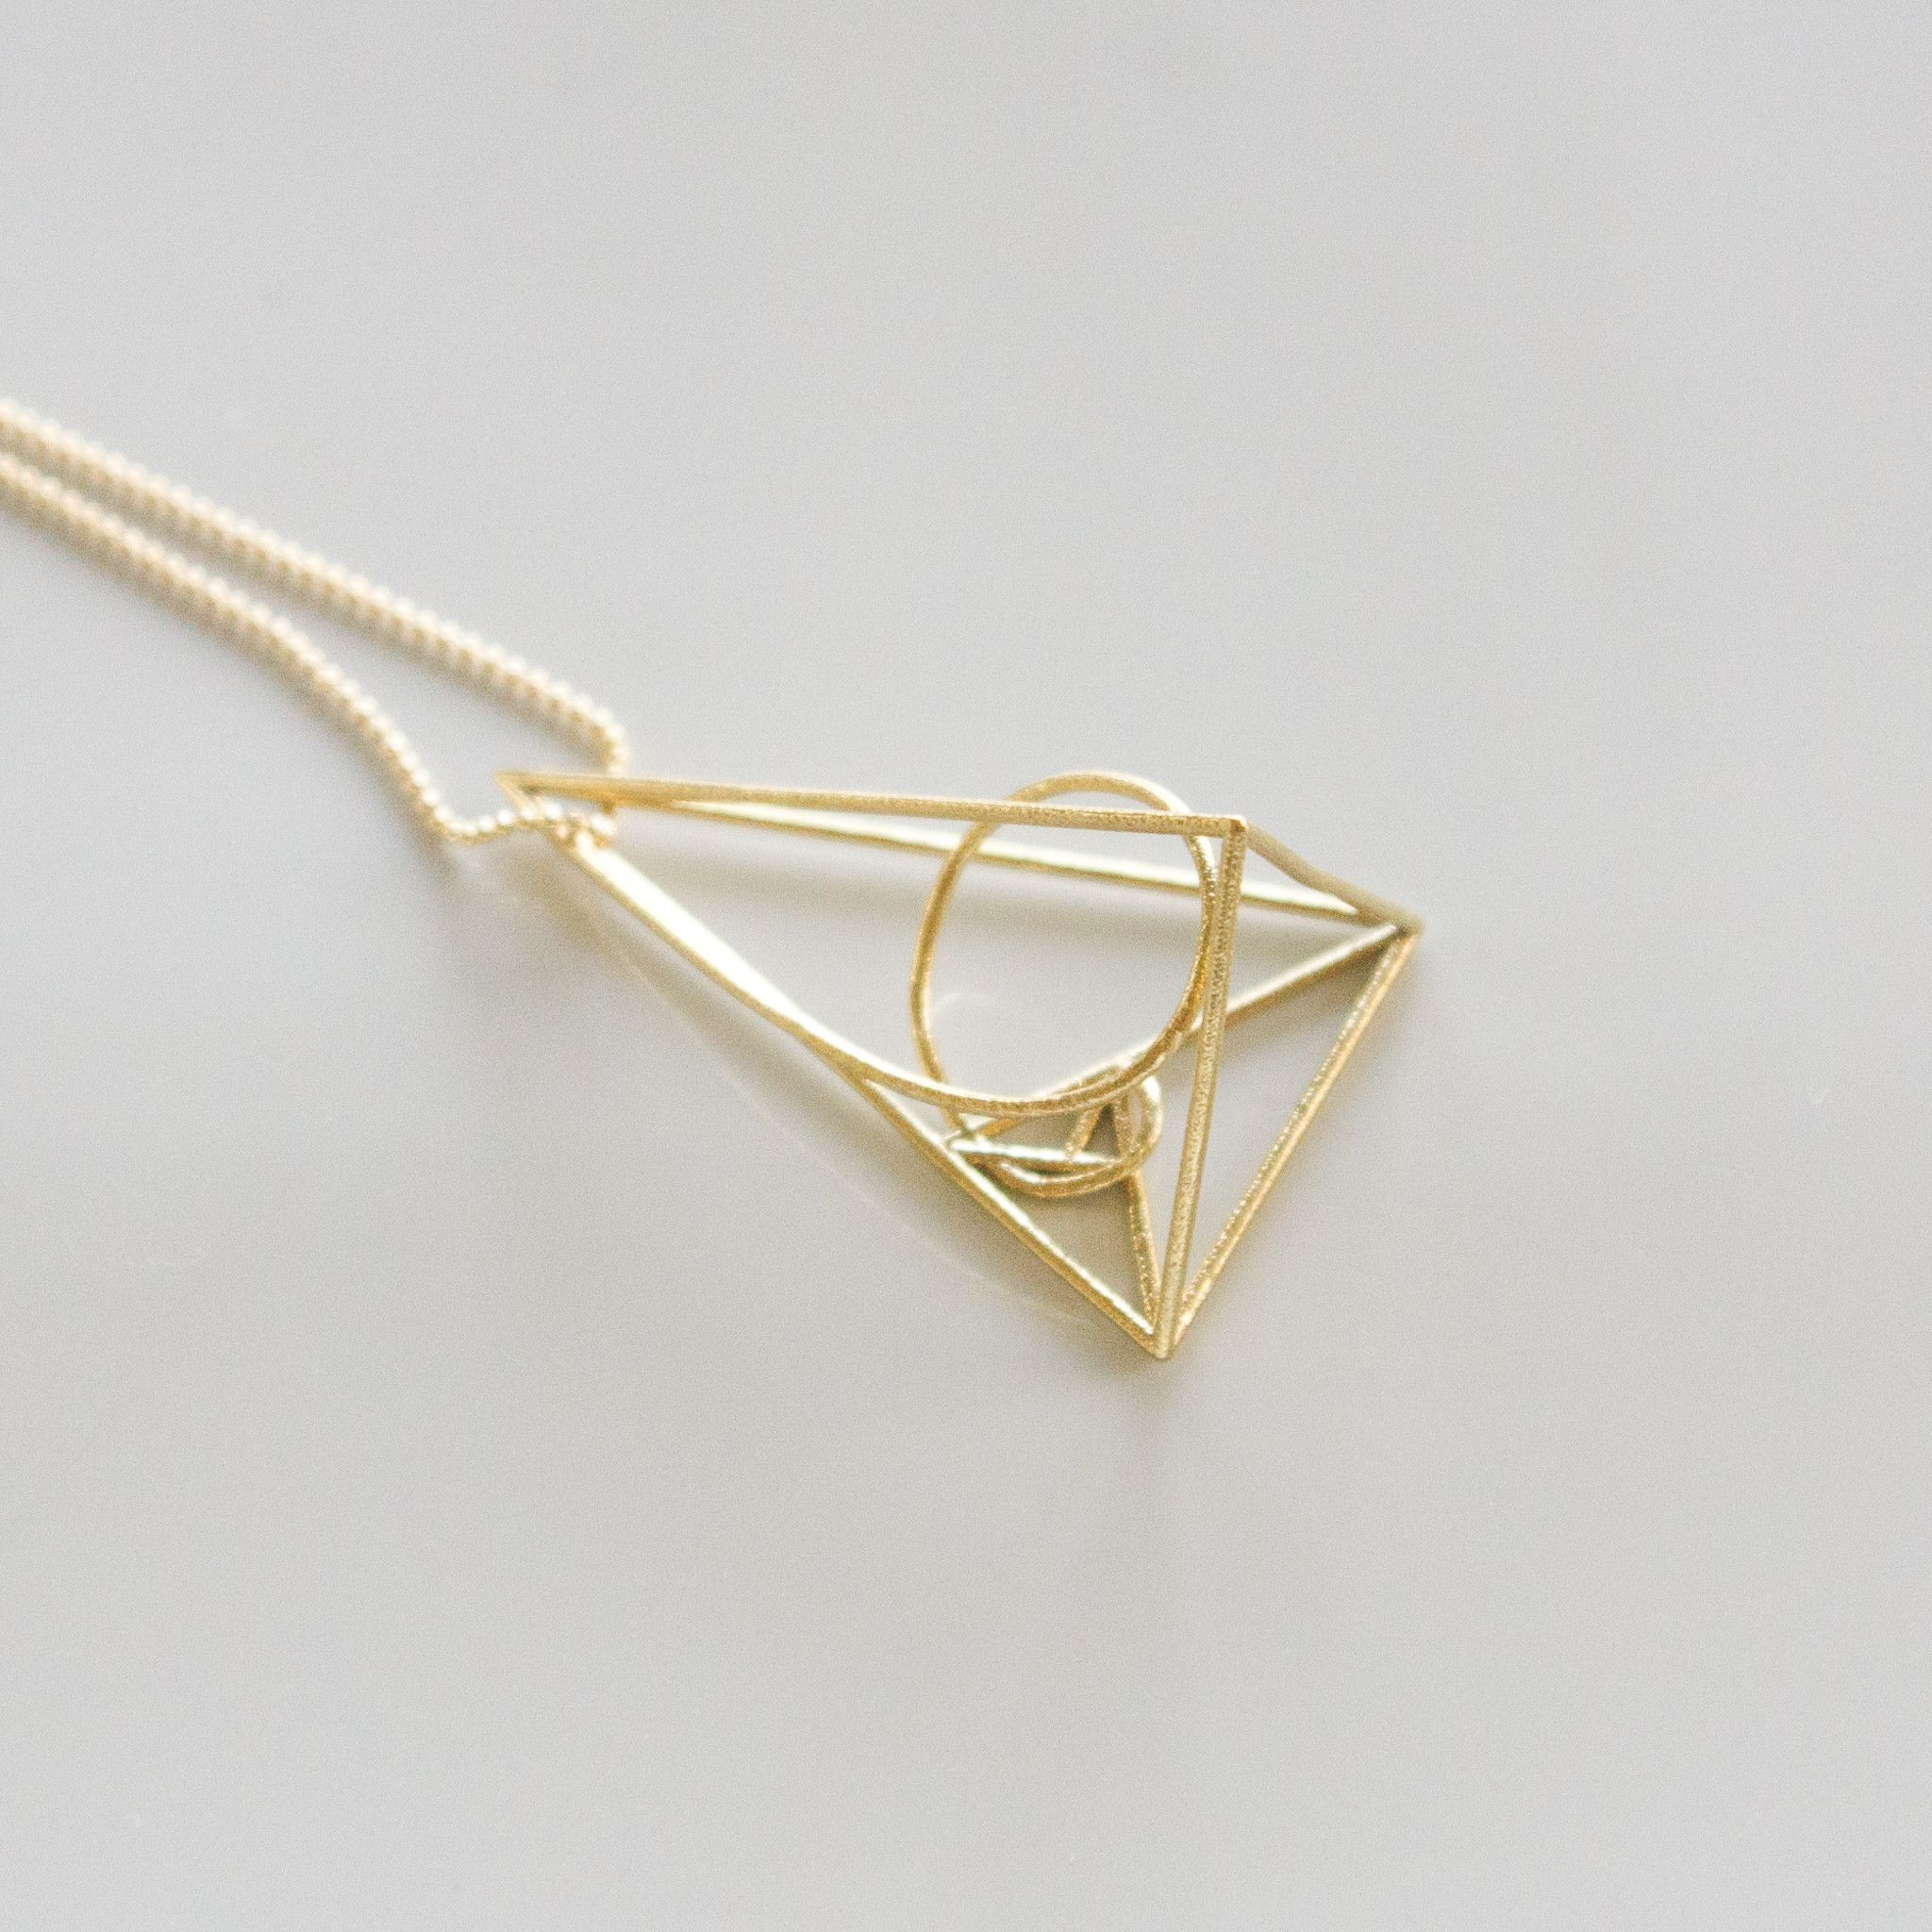 shop geometry rectangle spiral necklace img pin home ratio golden in naked